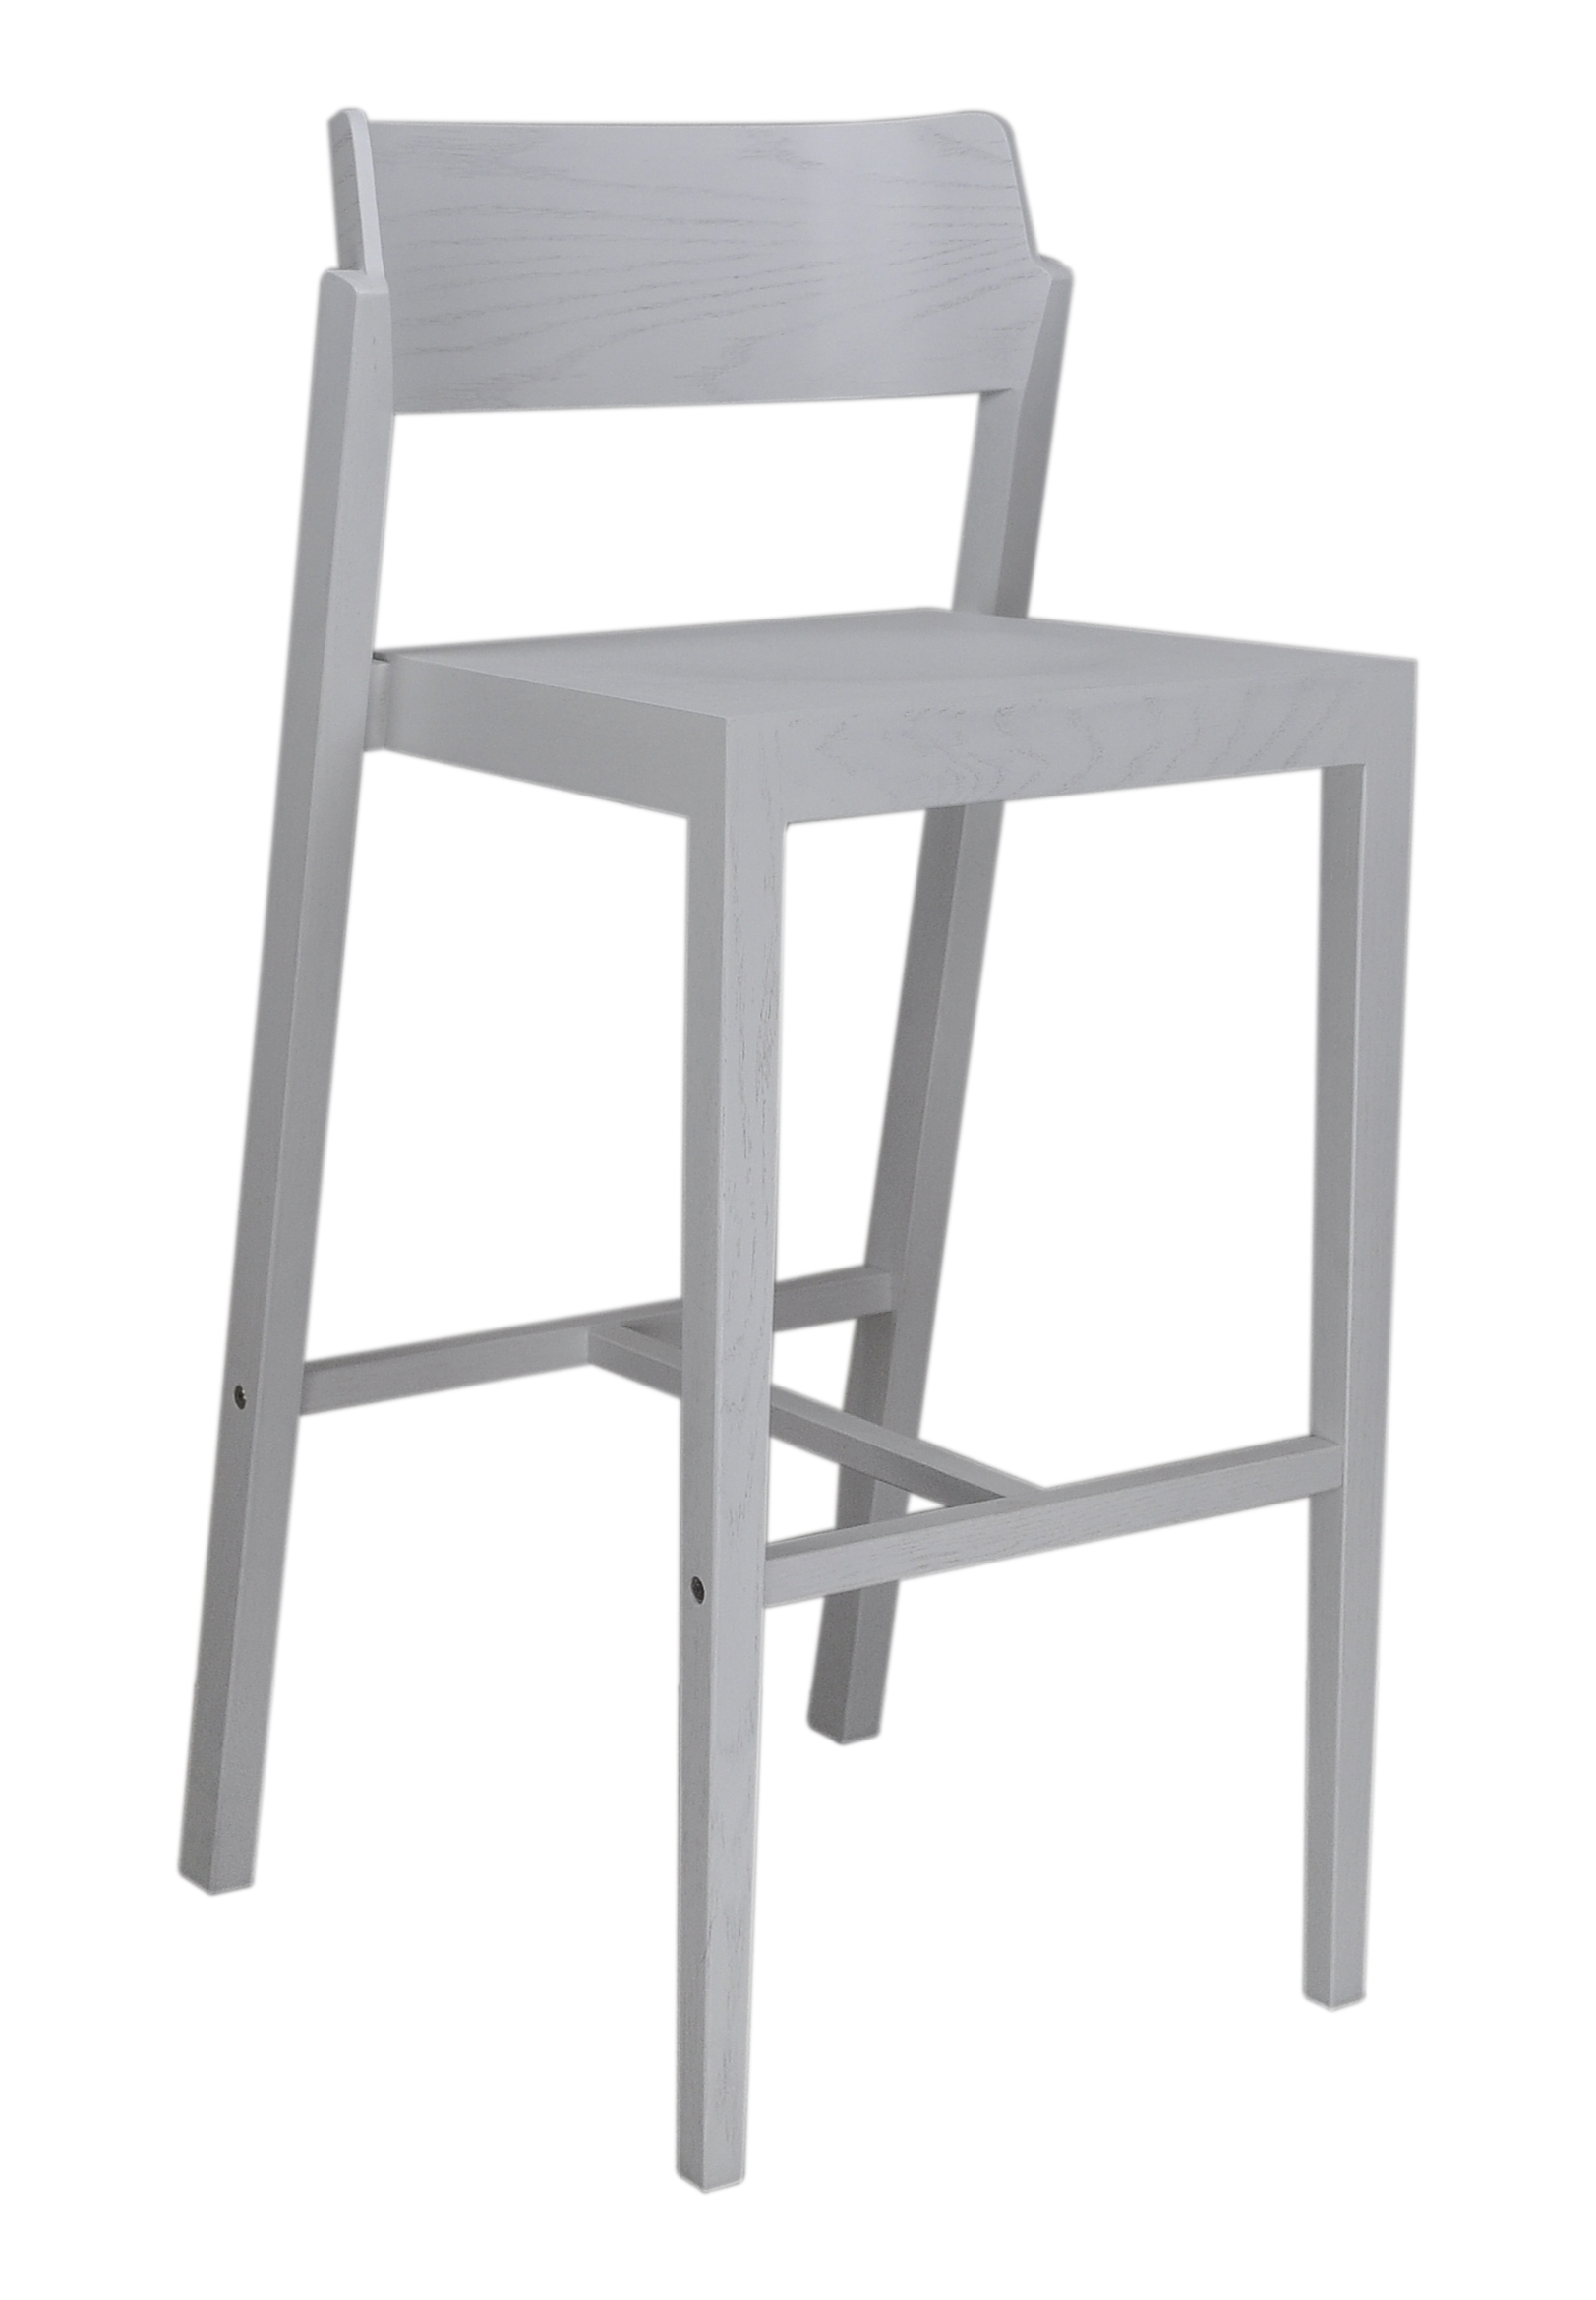 The 100 Bar Stool in white